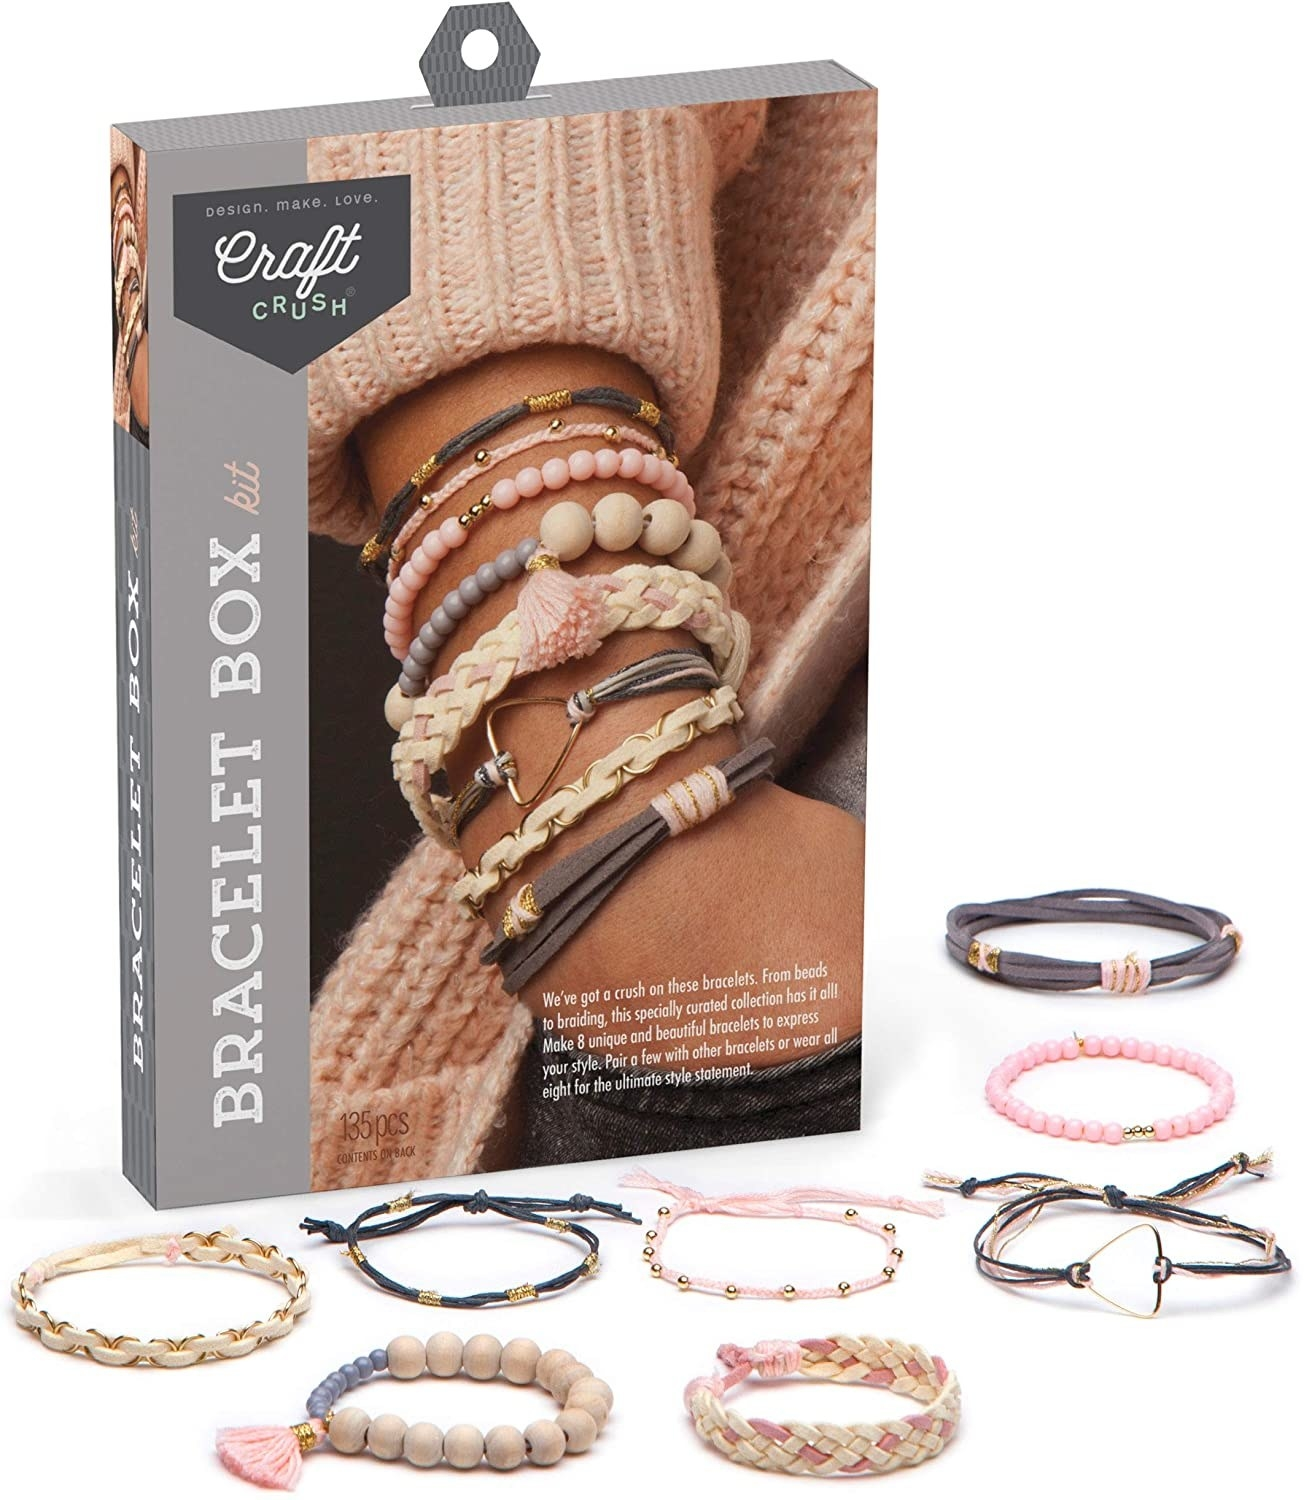 The kit which includes supplies to make beaded, braided, and string bracelets that are a combination of pink, tan, gray, and gold